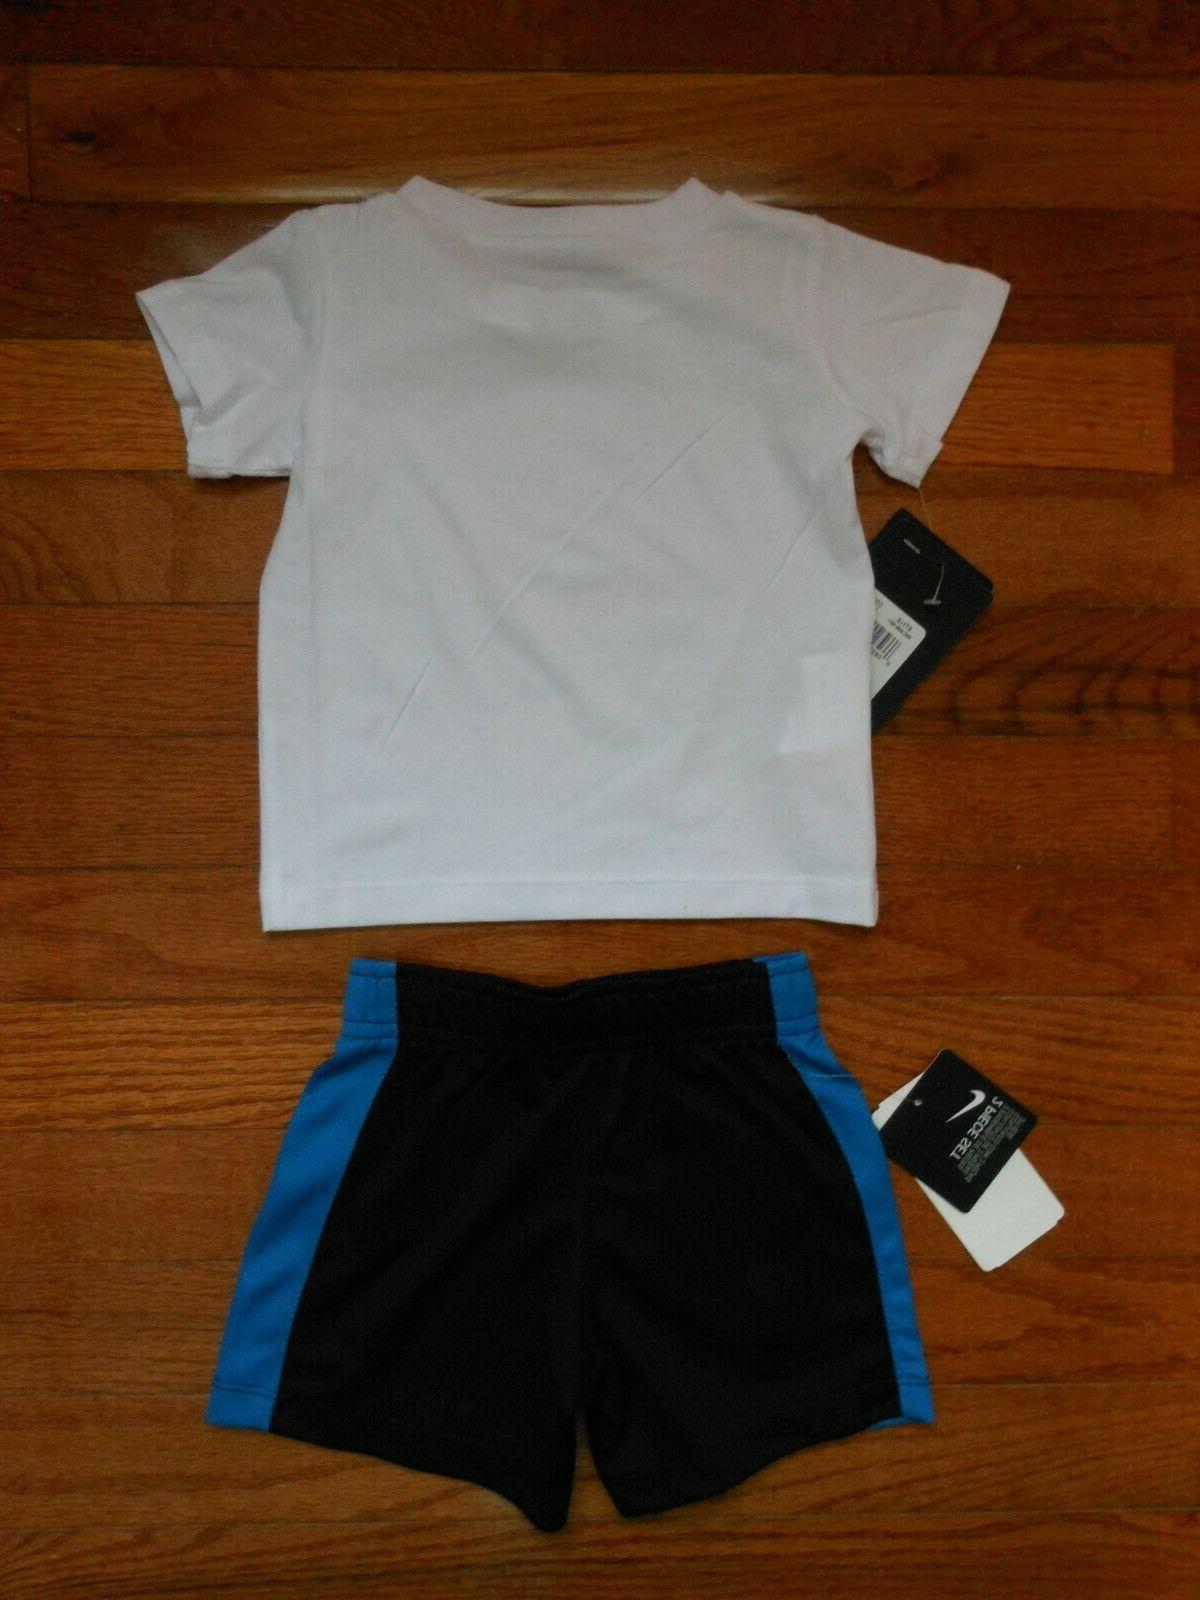 NWT Nike black short outfit size